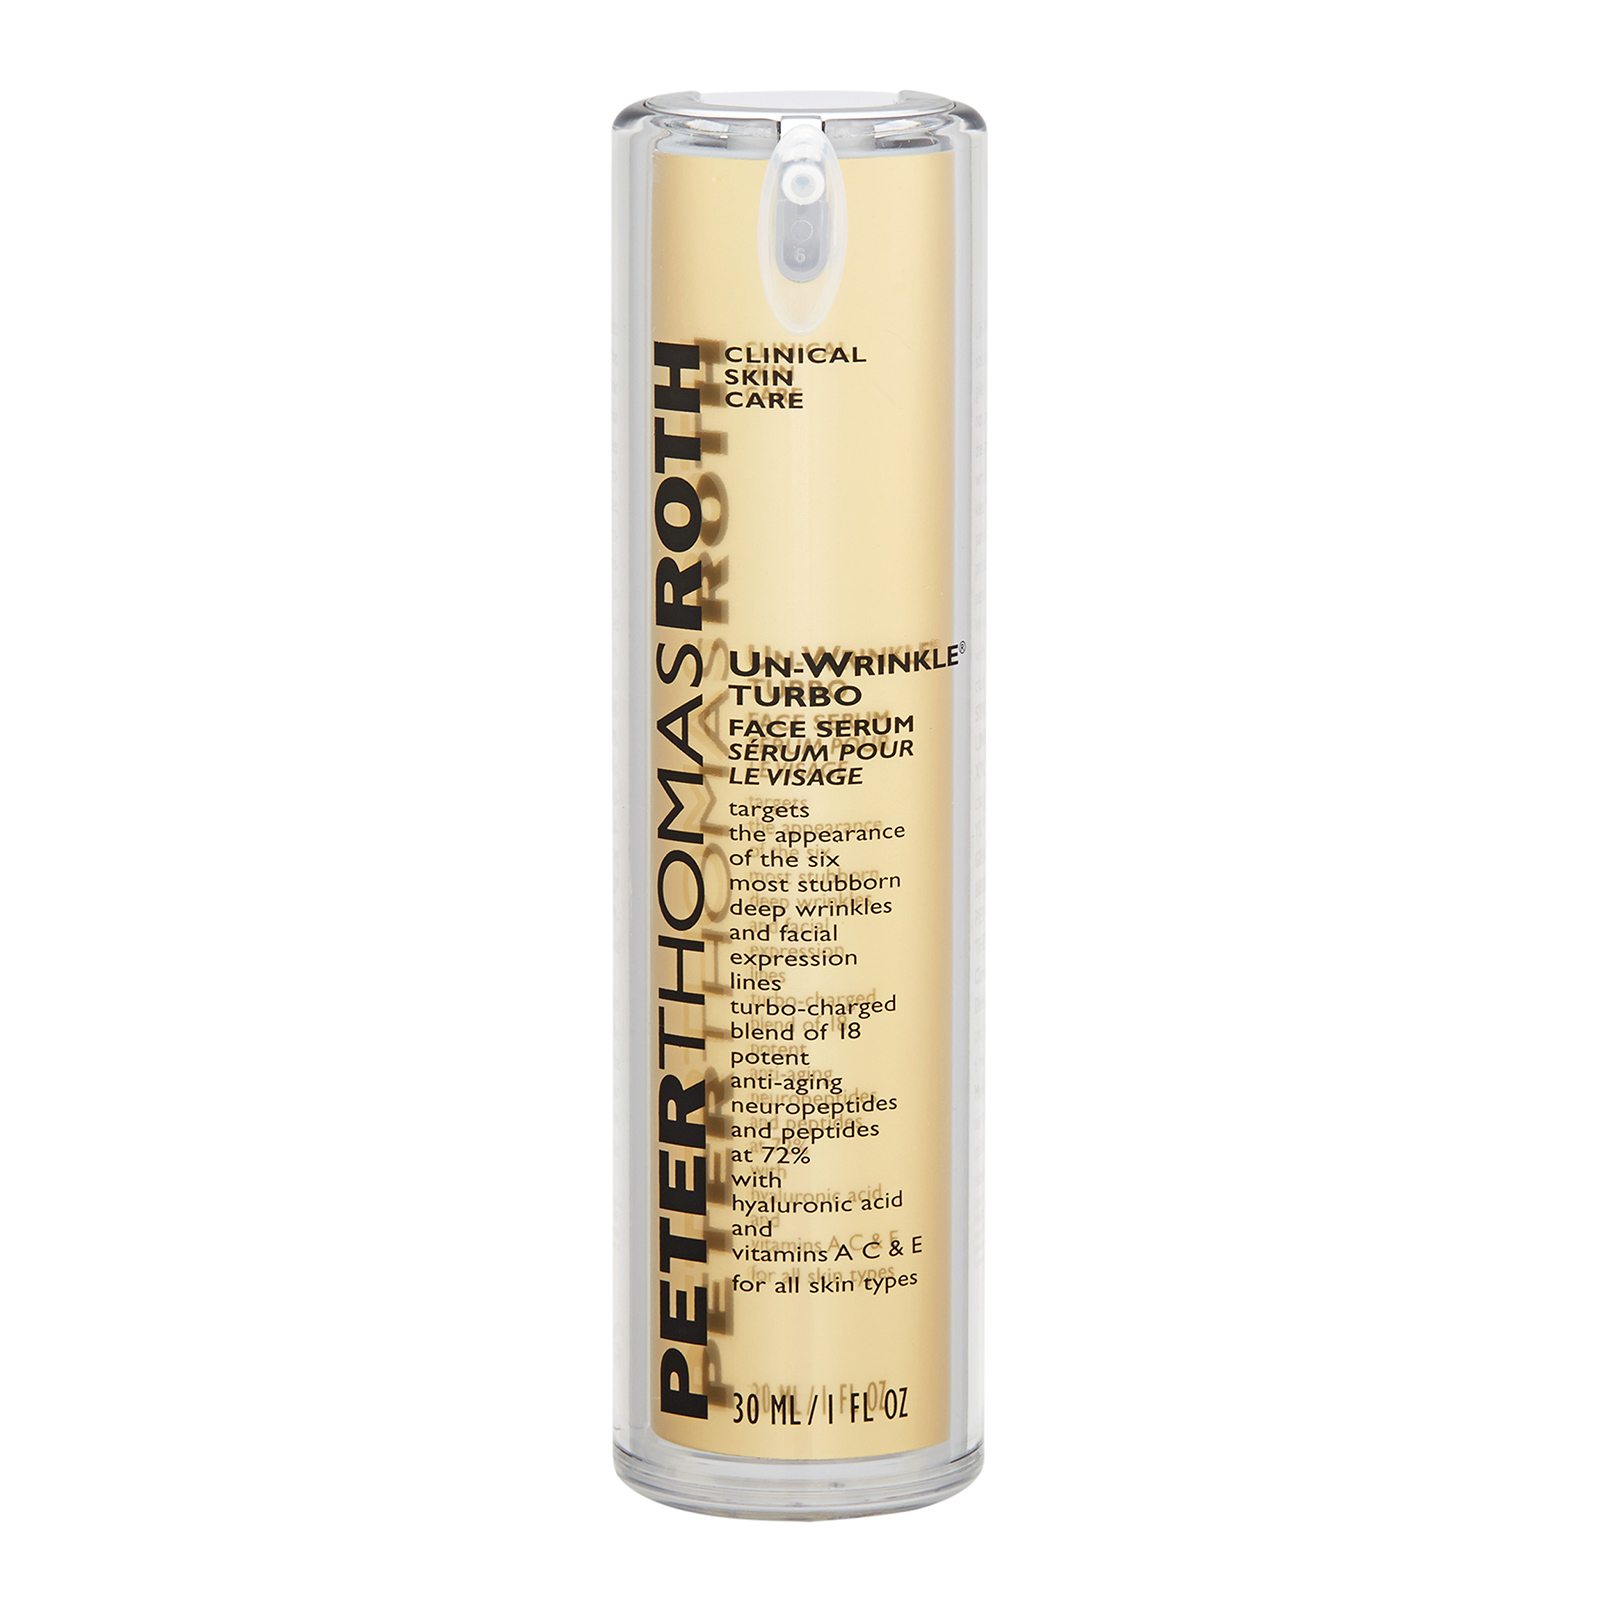 Peter Thomas Roth Un-Wrinkle  Turbo Face Serum (For All Skin Types) 1oz, 30ml